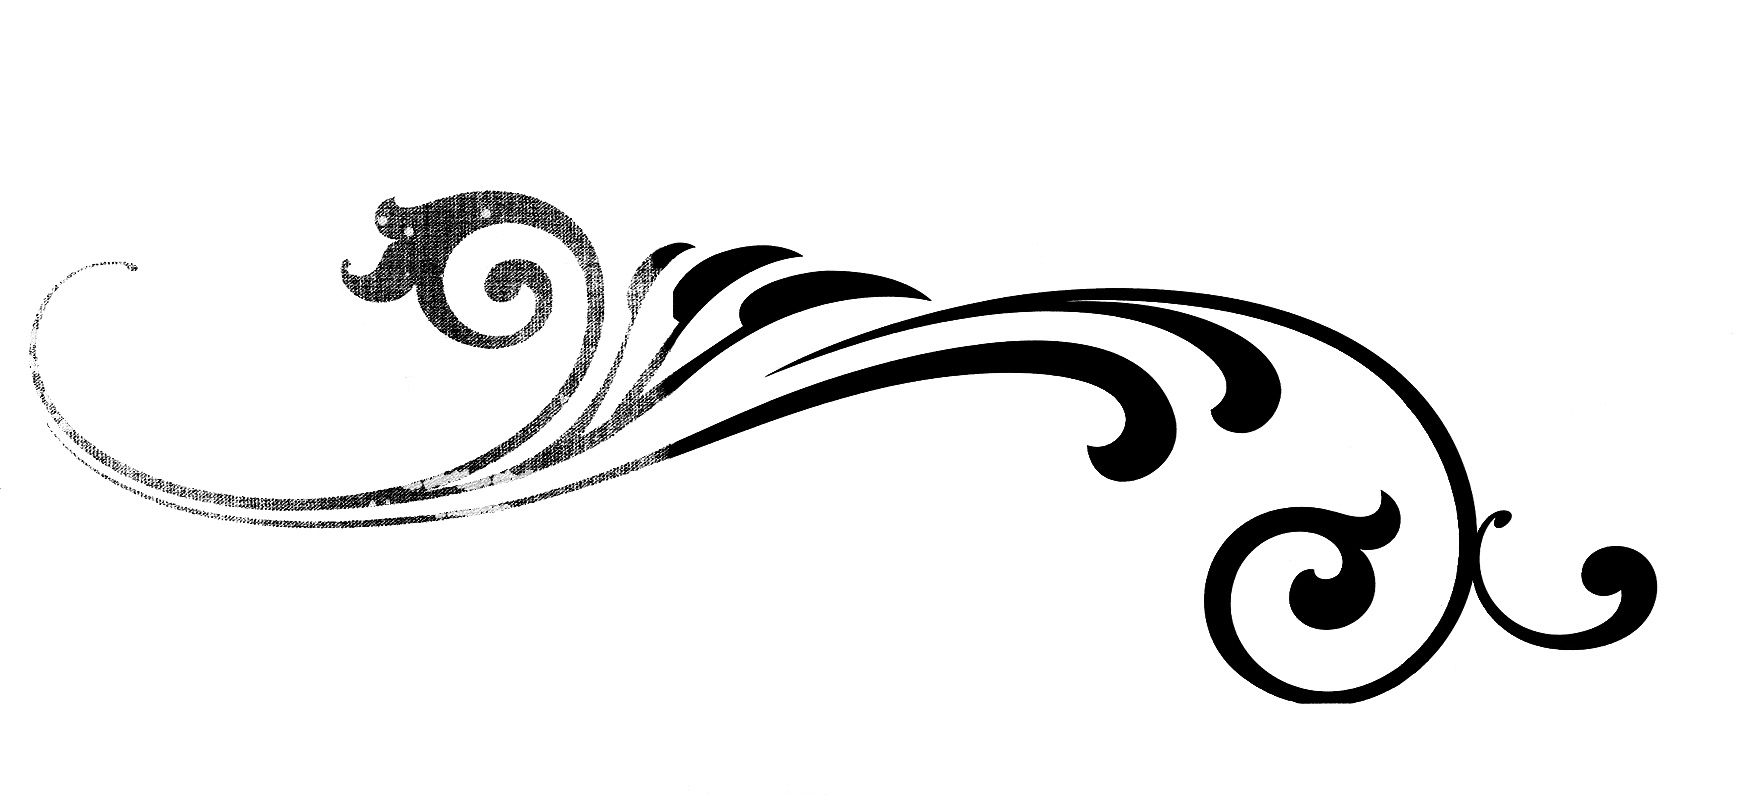 1747x795 Funeral Clipart Squiggly Line